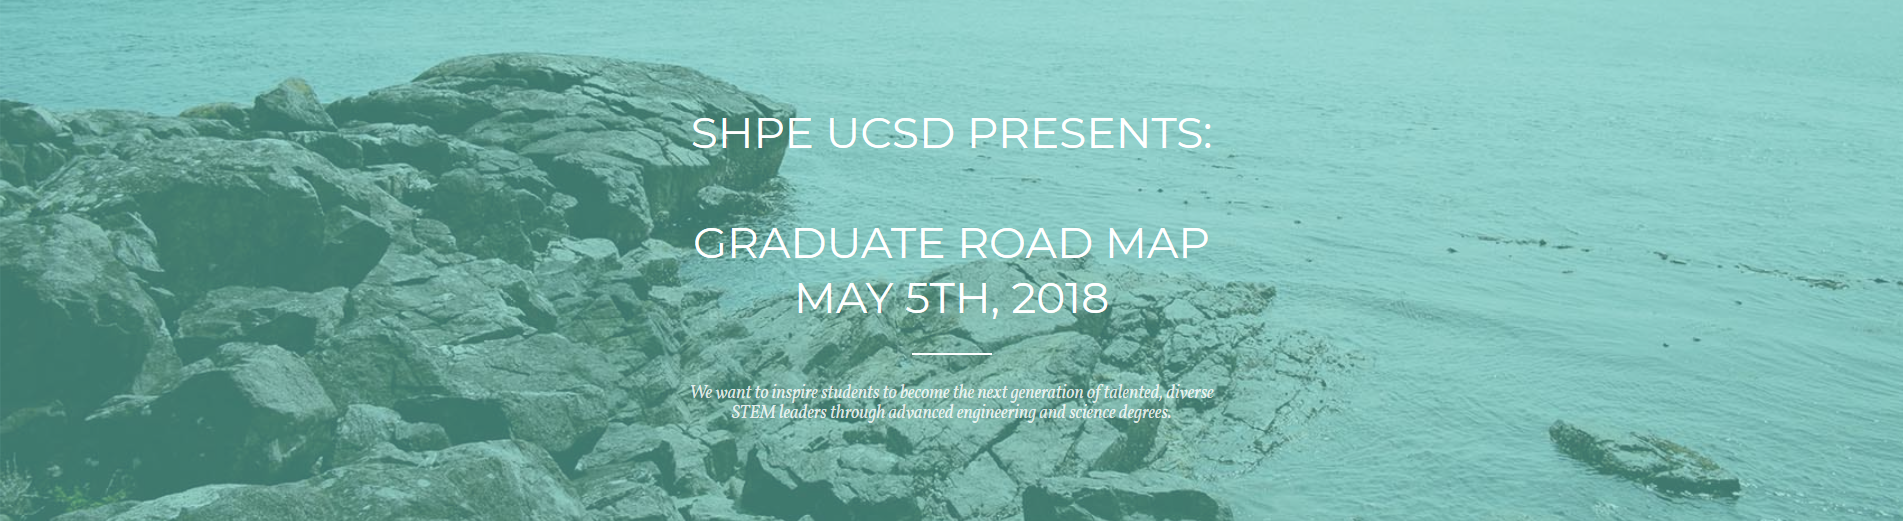 SHPE San Diego Professional Chapter | SHPE UCSD Presents: Graduate